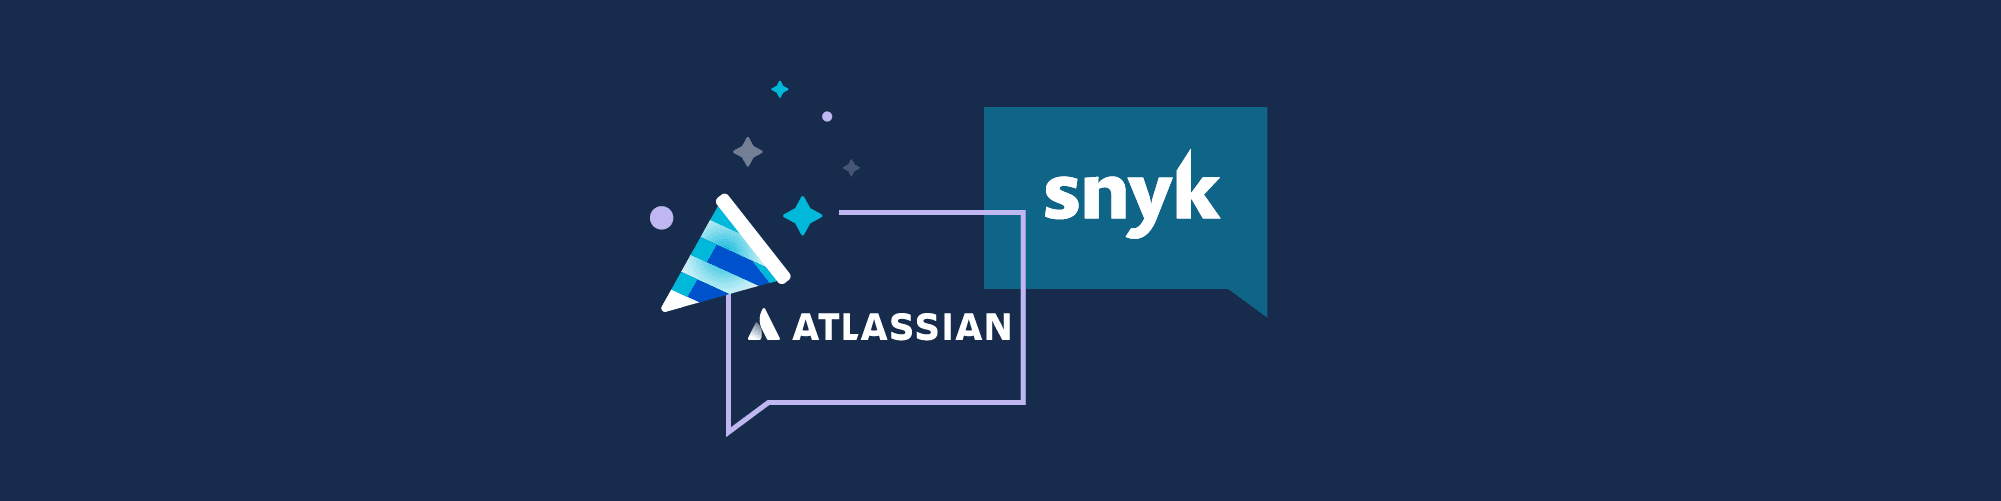 Snyk and Atlassian supporting developer-friendly security processes